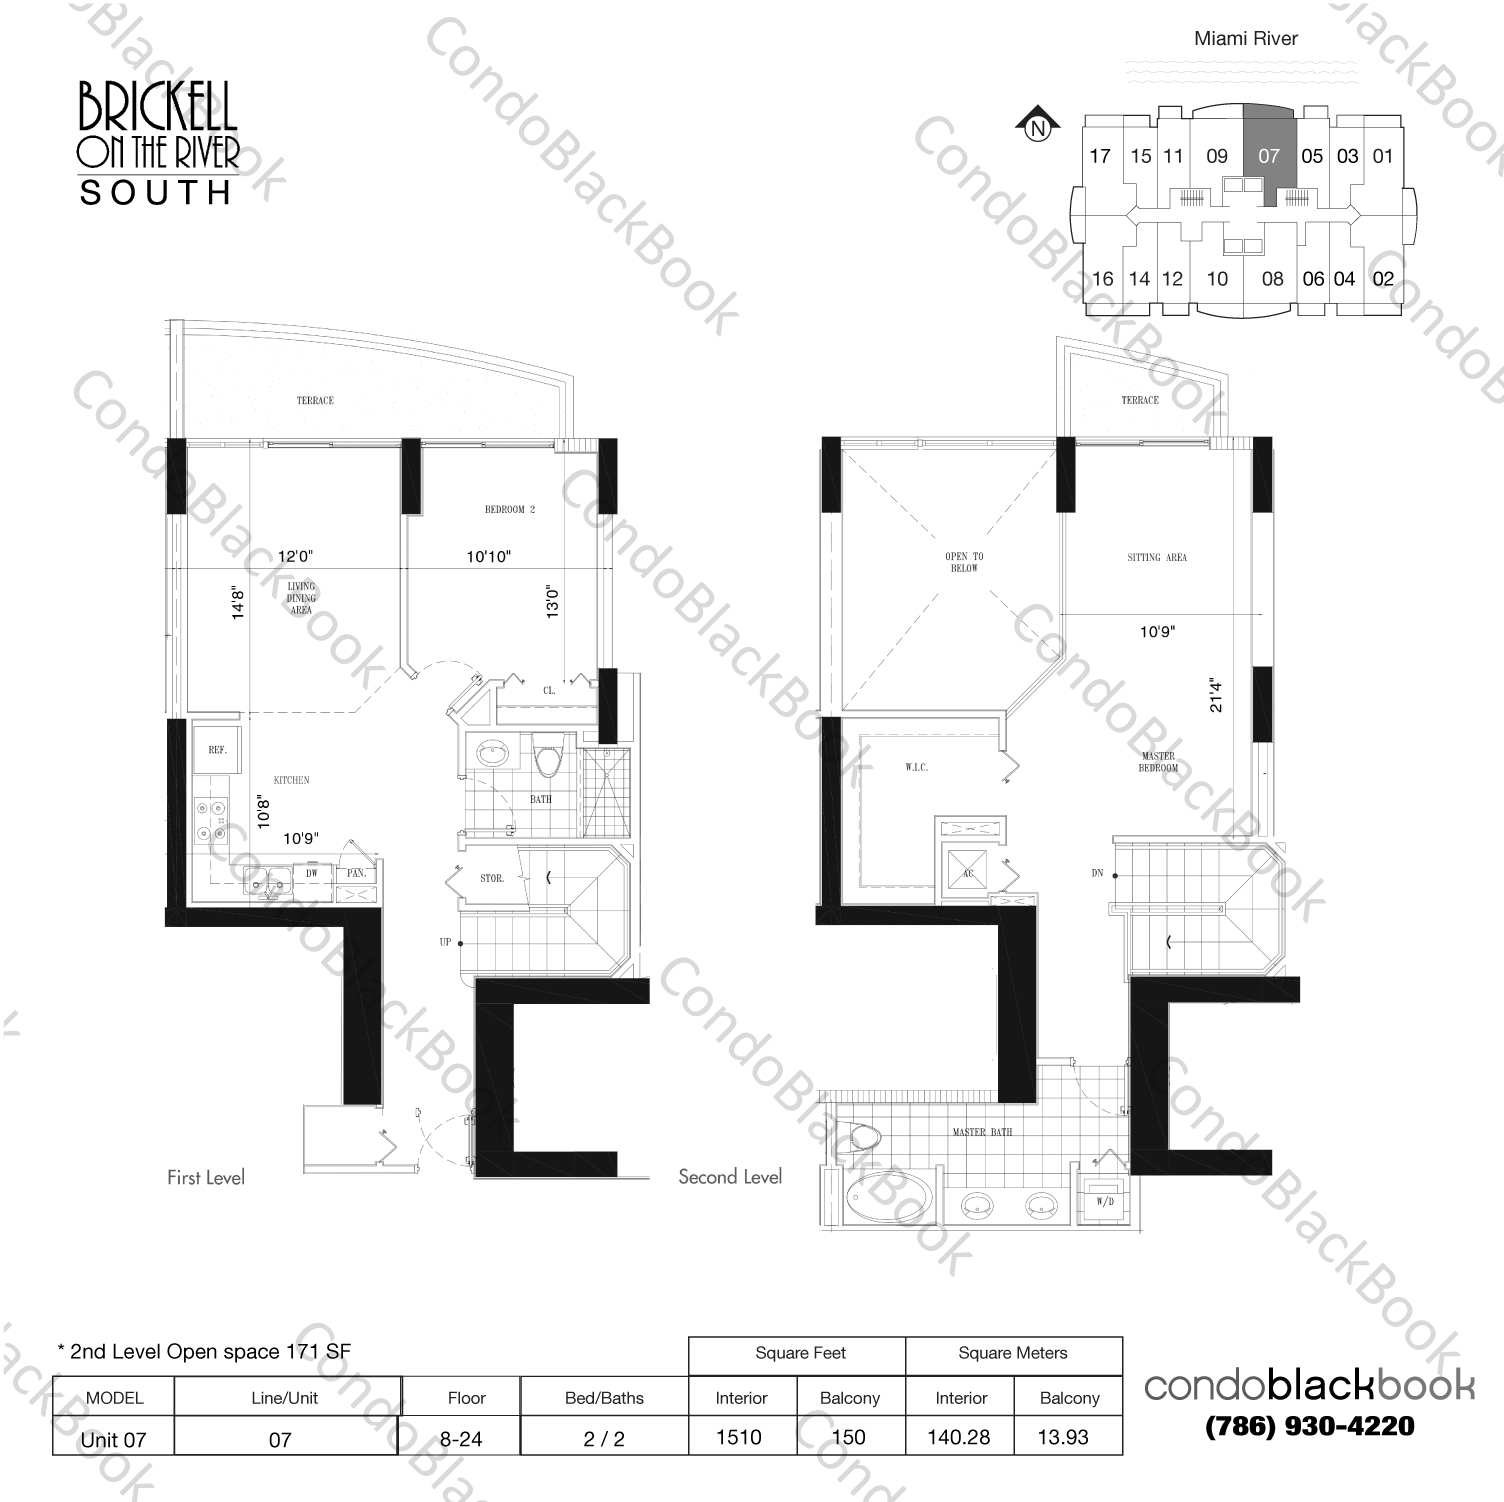 Floor plan for Brickell on the River South Brickell Miami, model Unit 07, line 07, 2/2 bedrooms, 1339 sq ft